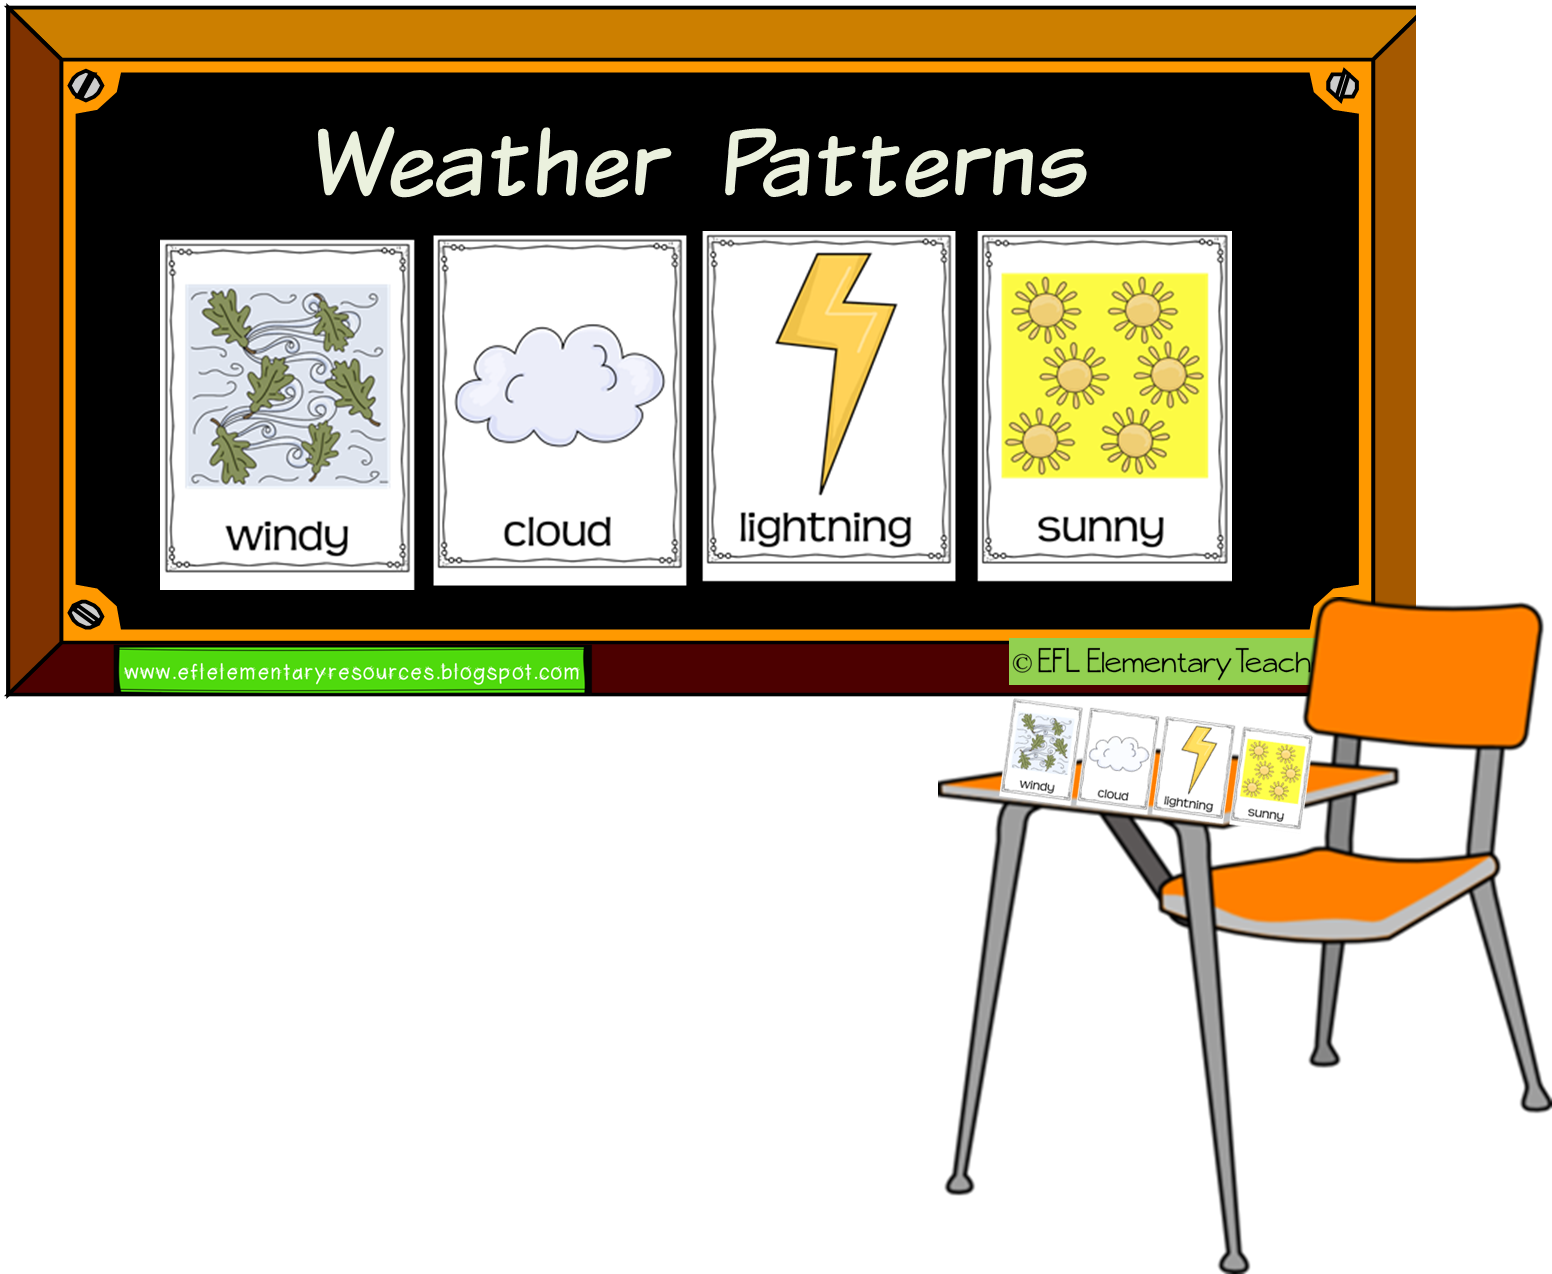 Efl elementary teachers flashcards. Windy clipart weather word